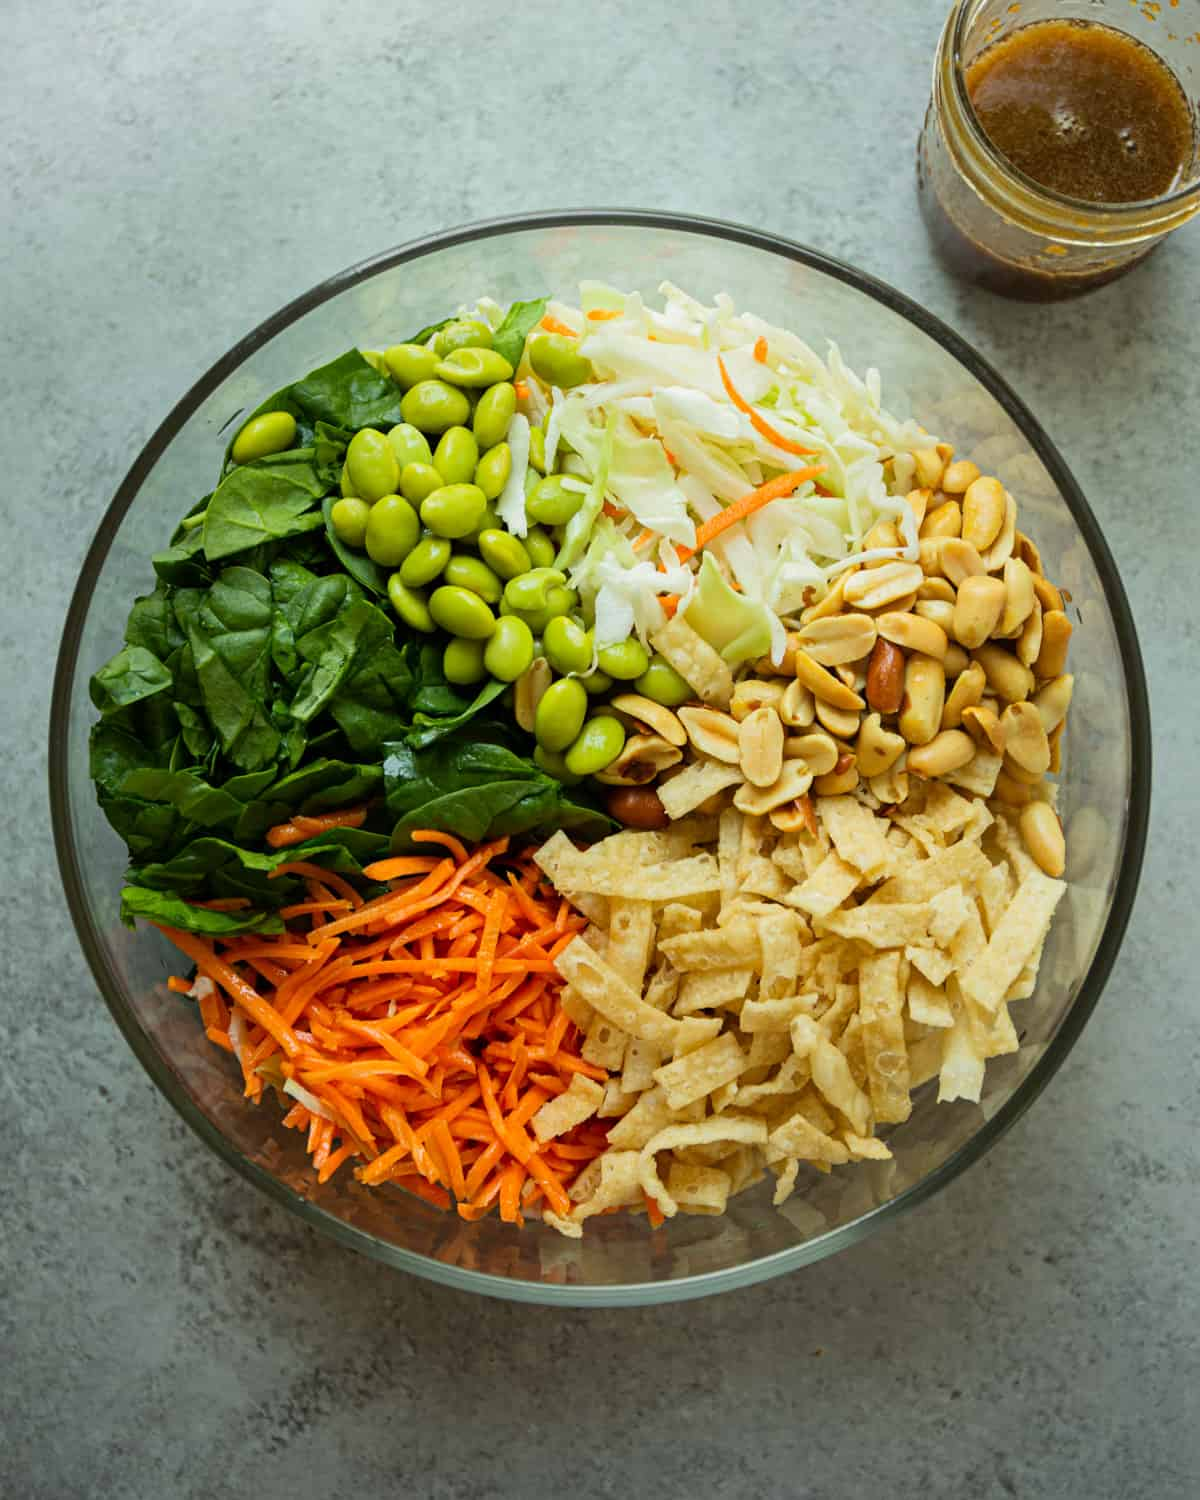 ingredients for Asian chopped salad in a clear glass bowl